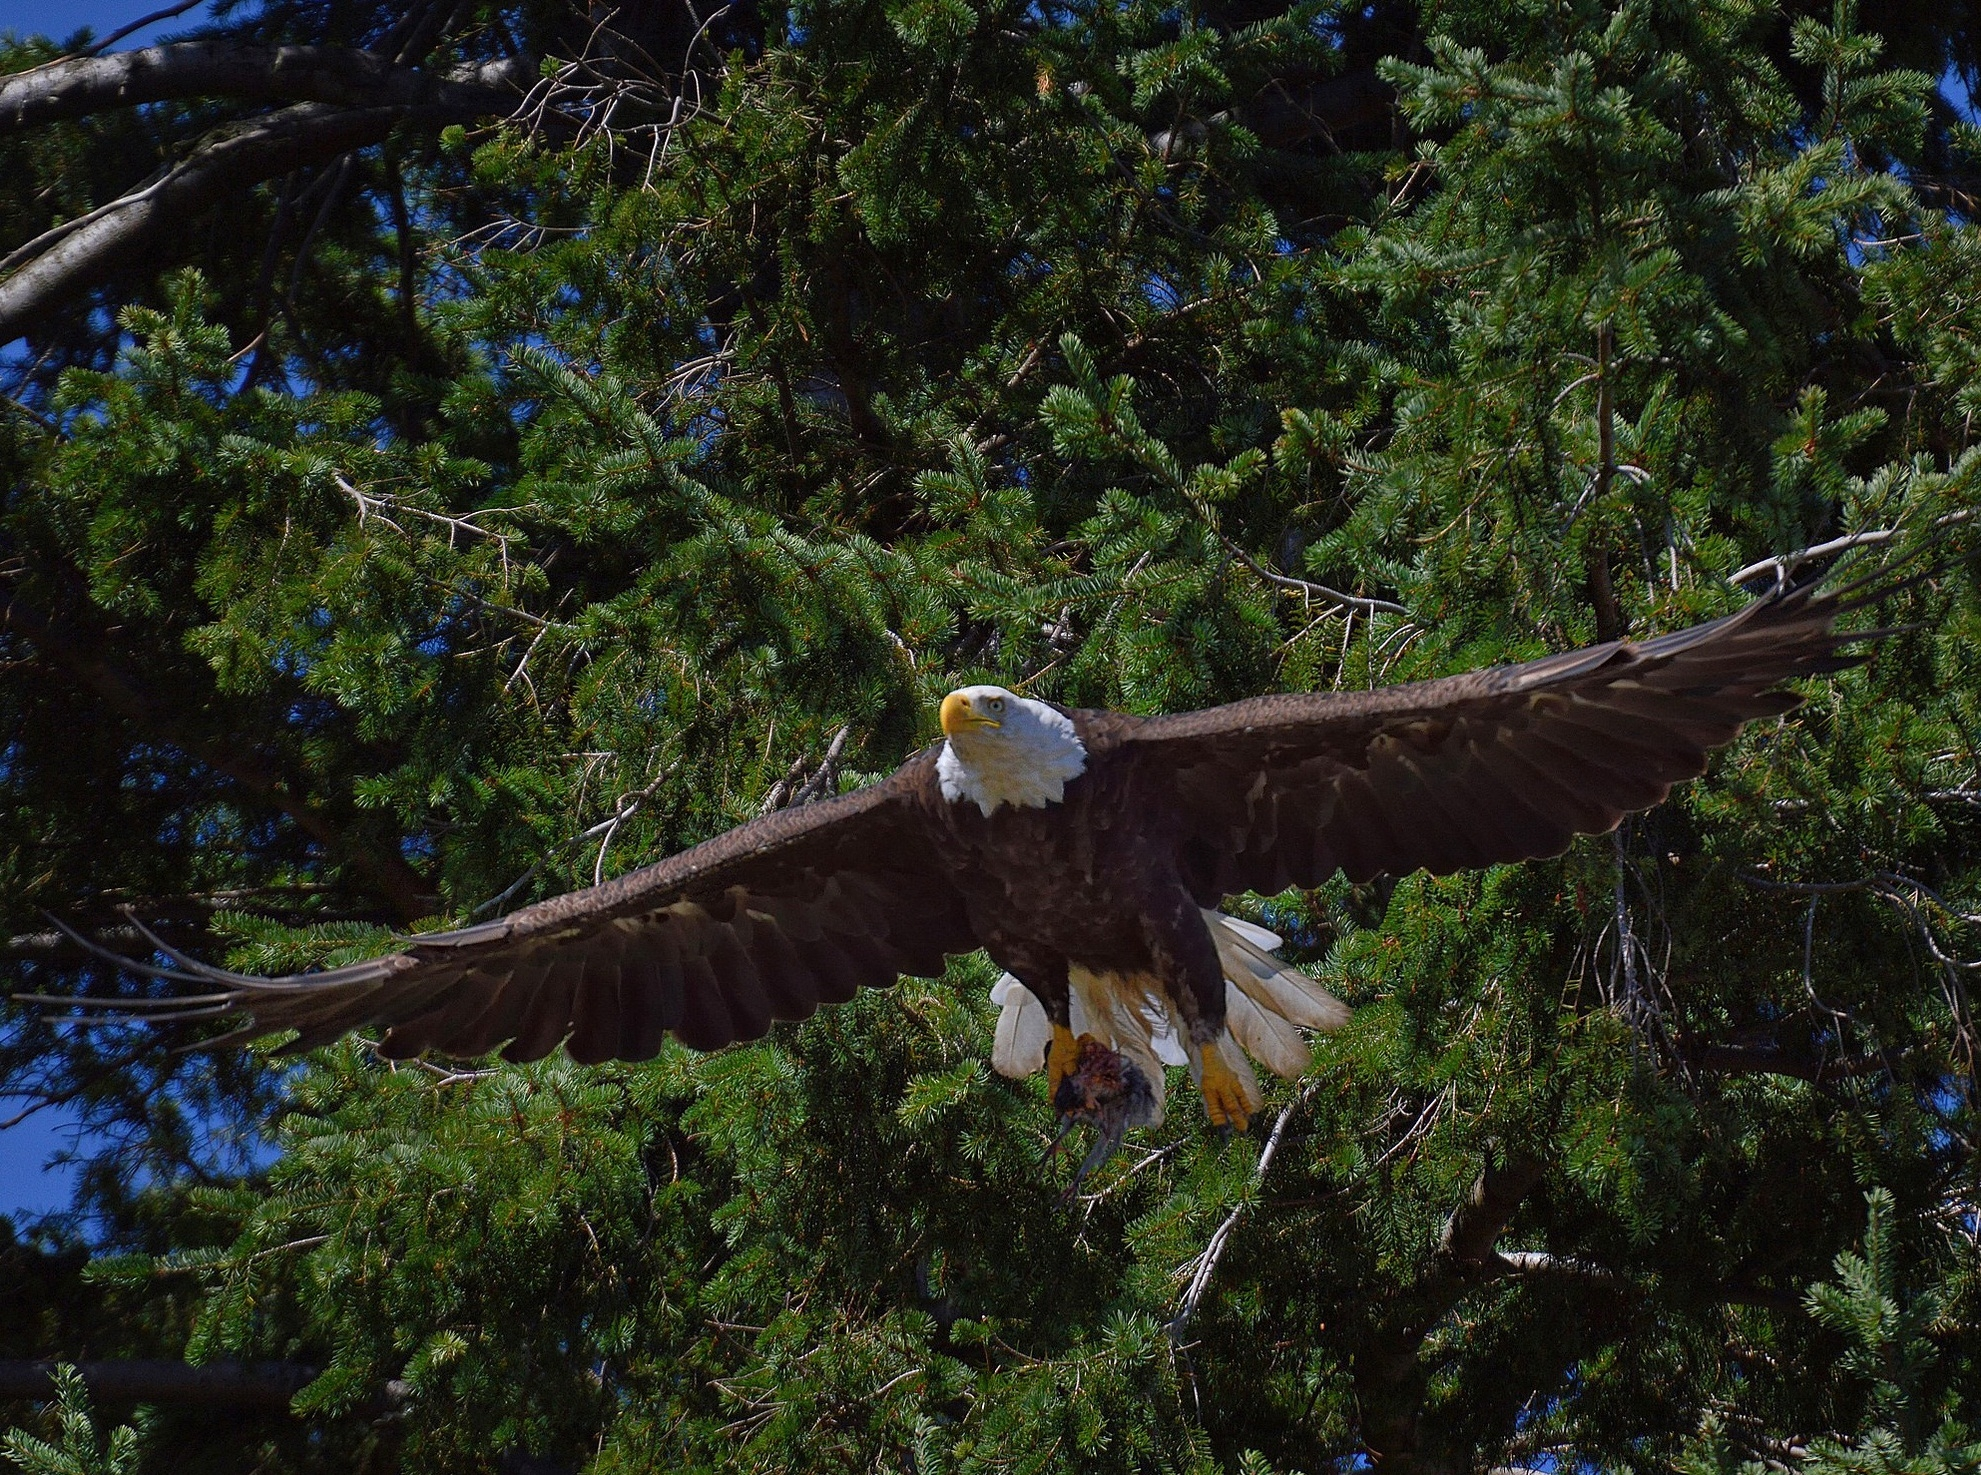 124593 download wallpaper Animals, Bald Eagle, White-Headed Eagle, Bird, Predator, Flight, Trees screensavers and pictures for free